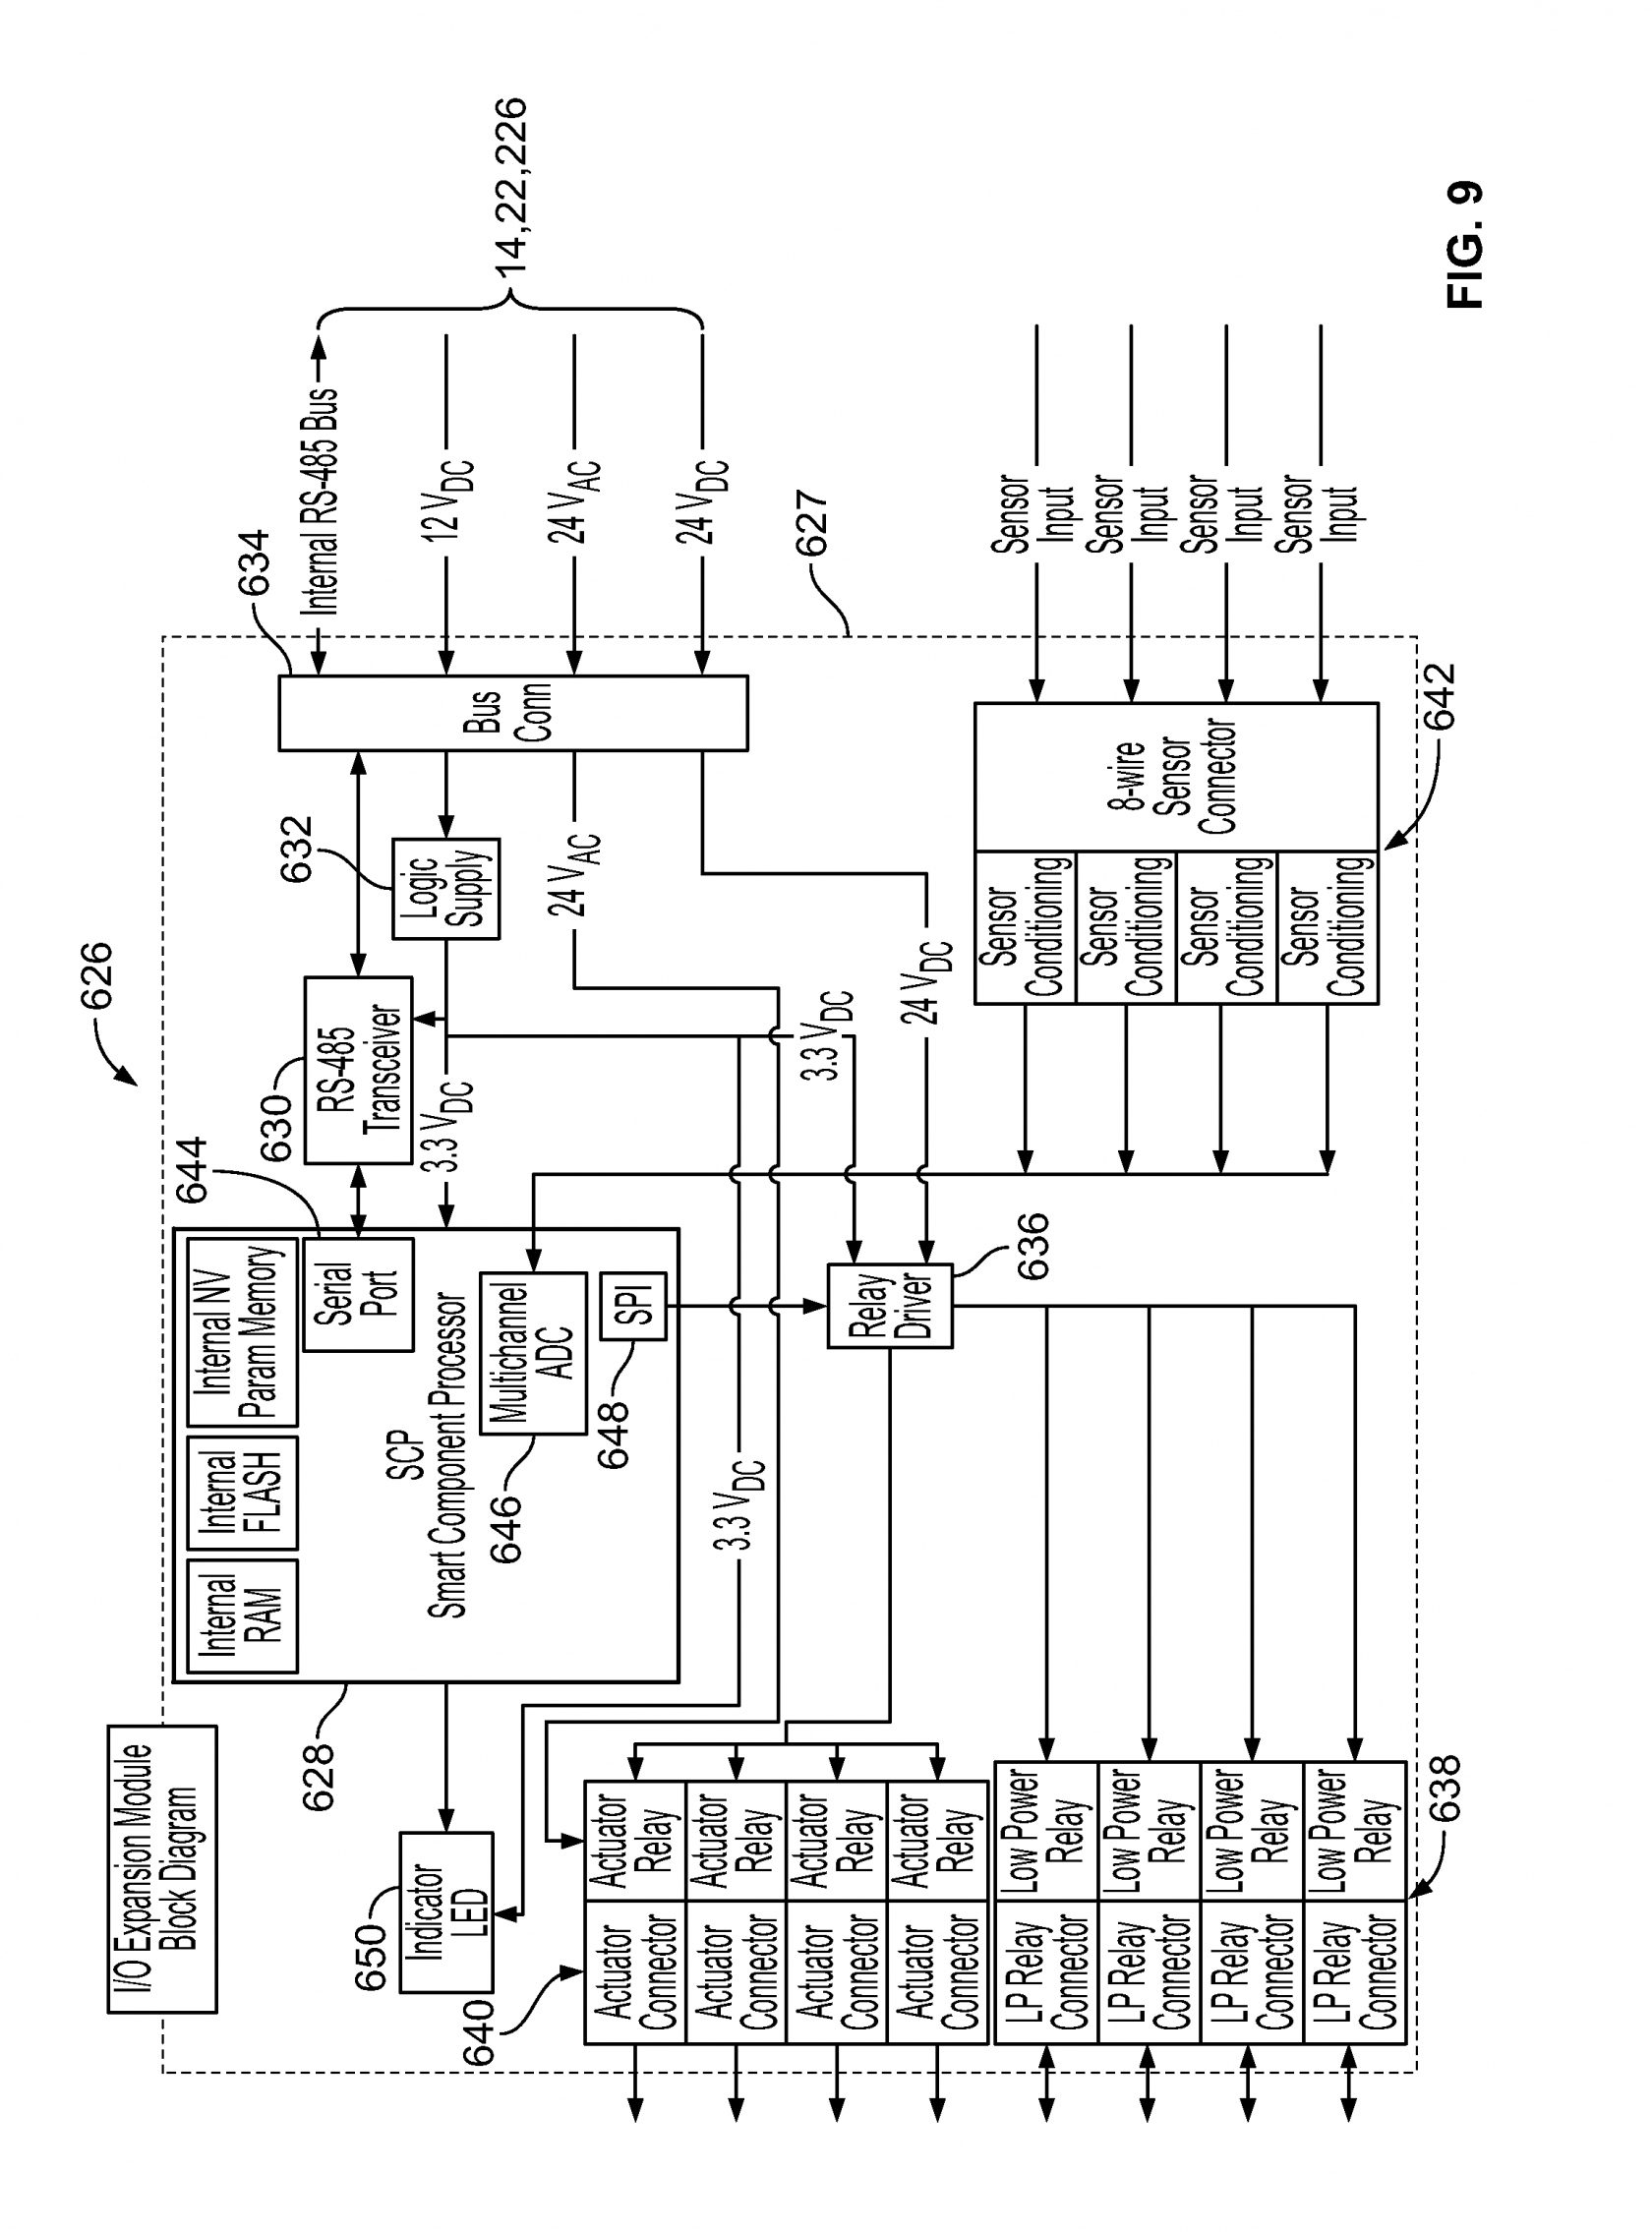 thermospa wiring diagram Download-Thermospa Wiring Diagram Elegant Sta Rite Pump Wiring Diagram Pool Ga 400 Series Spares Swimming 17-e